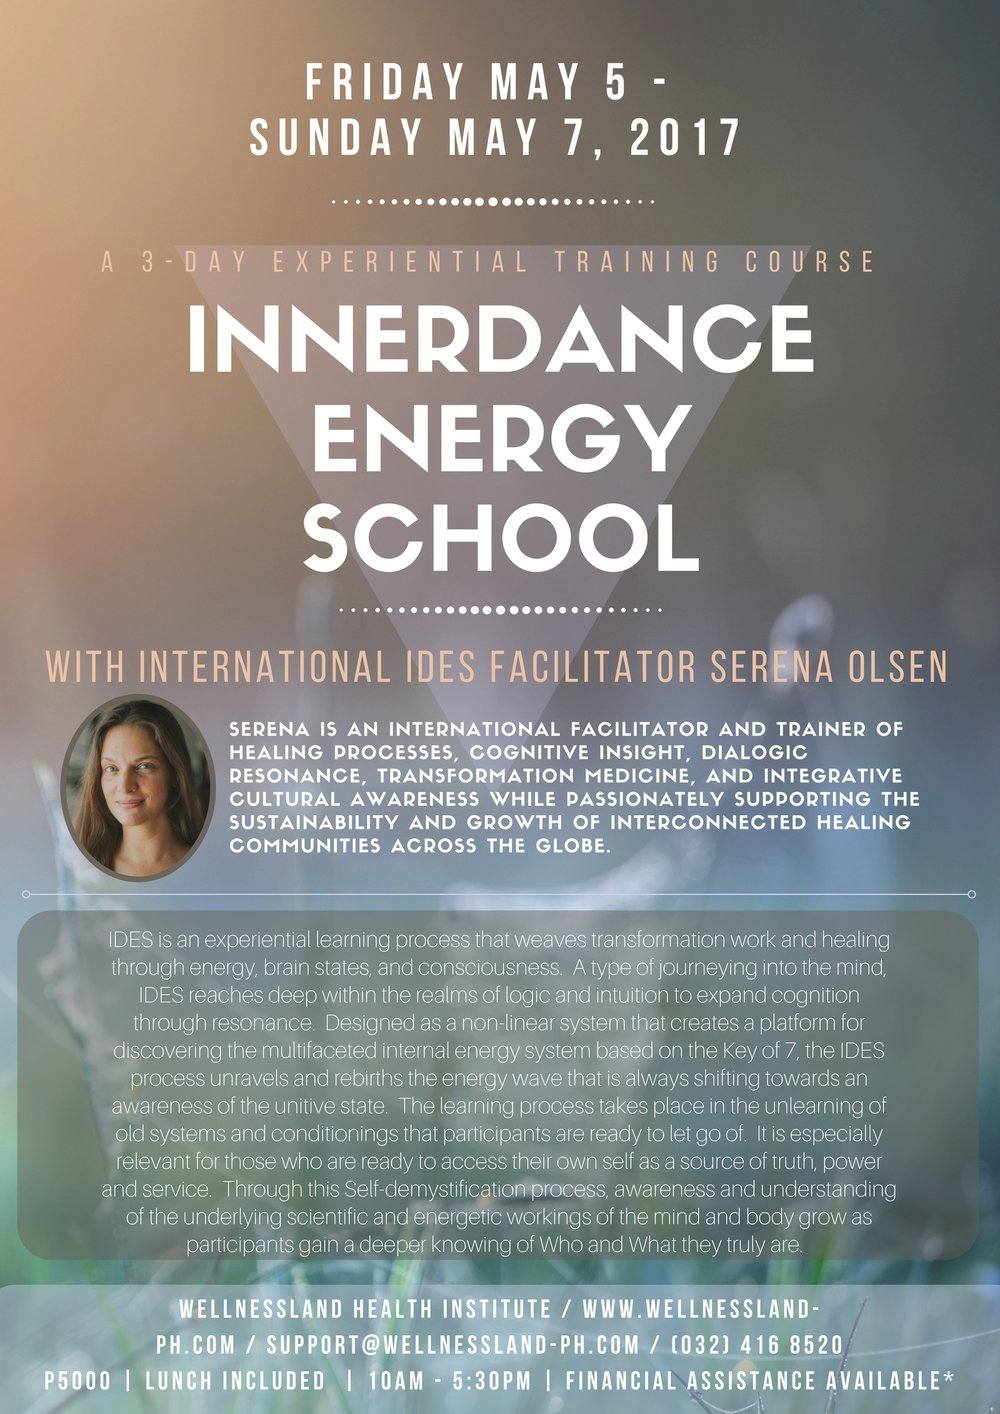 innerdance energy school